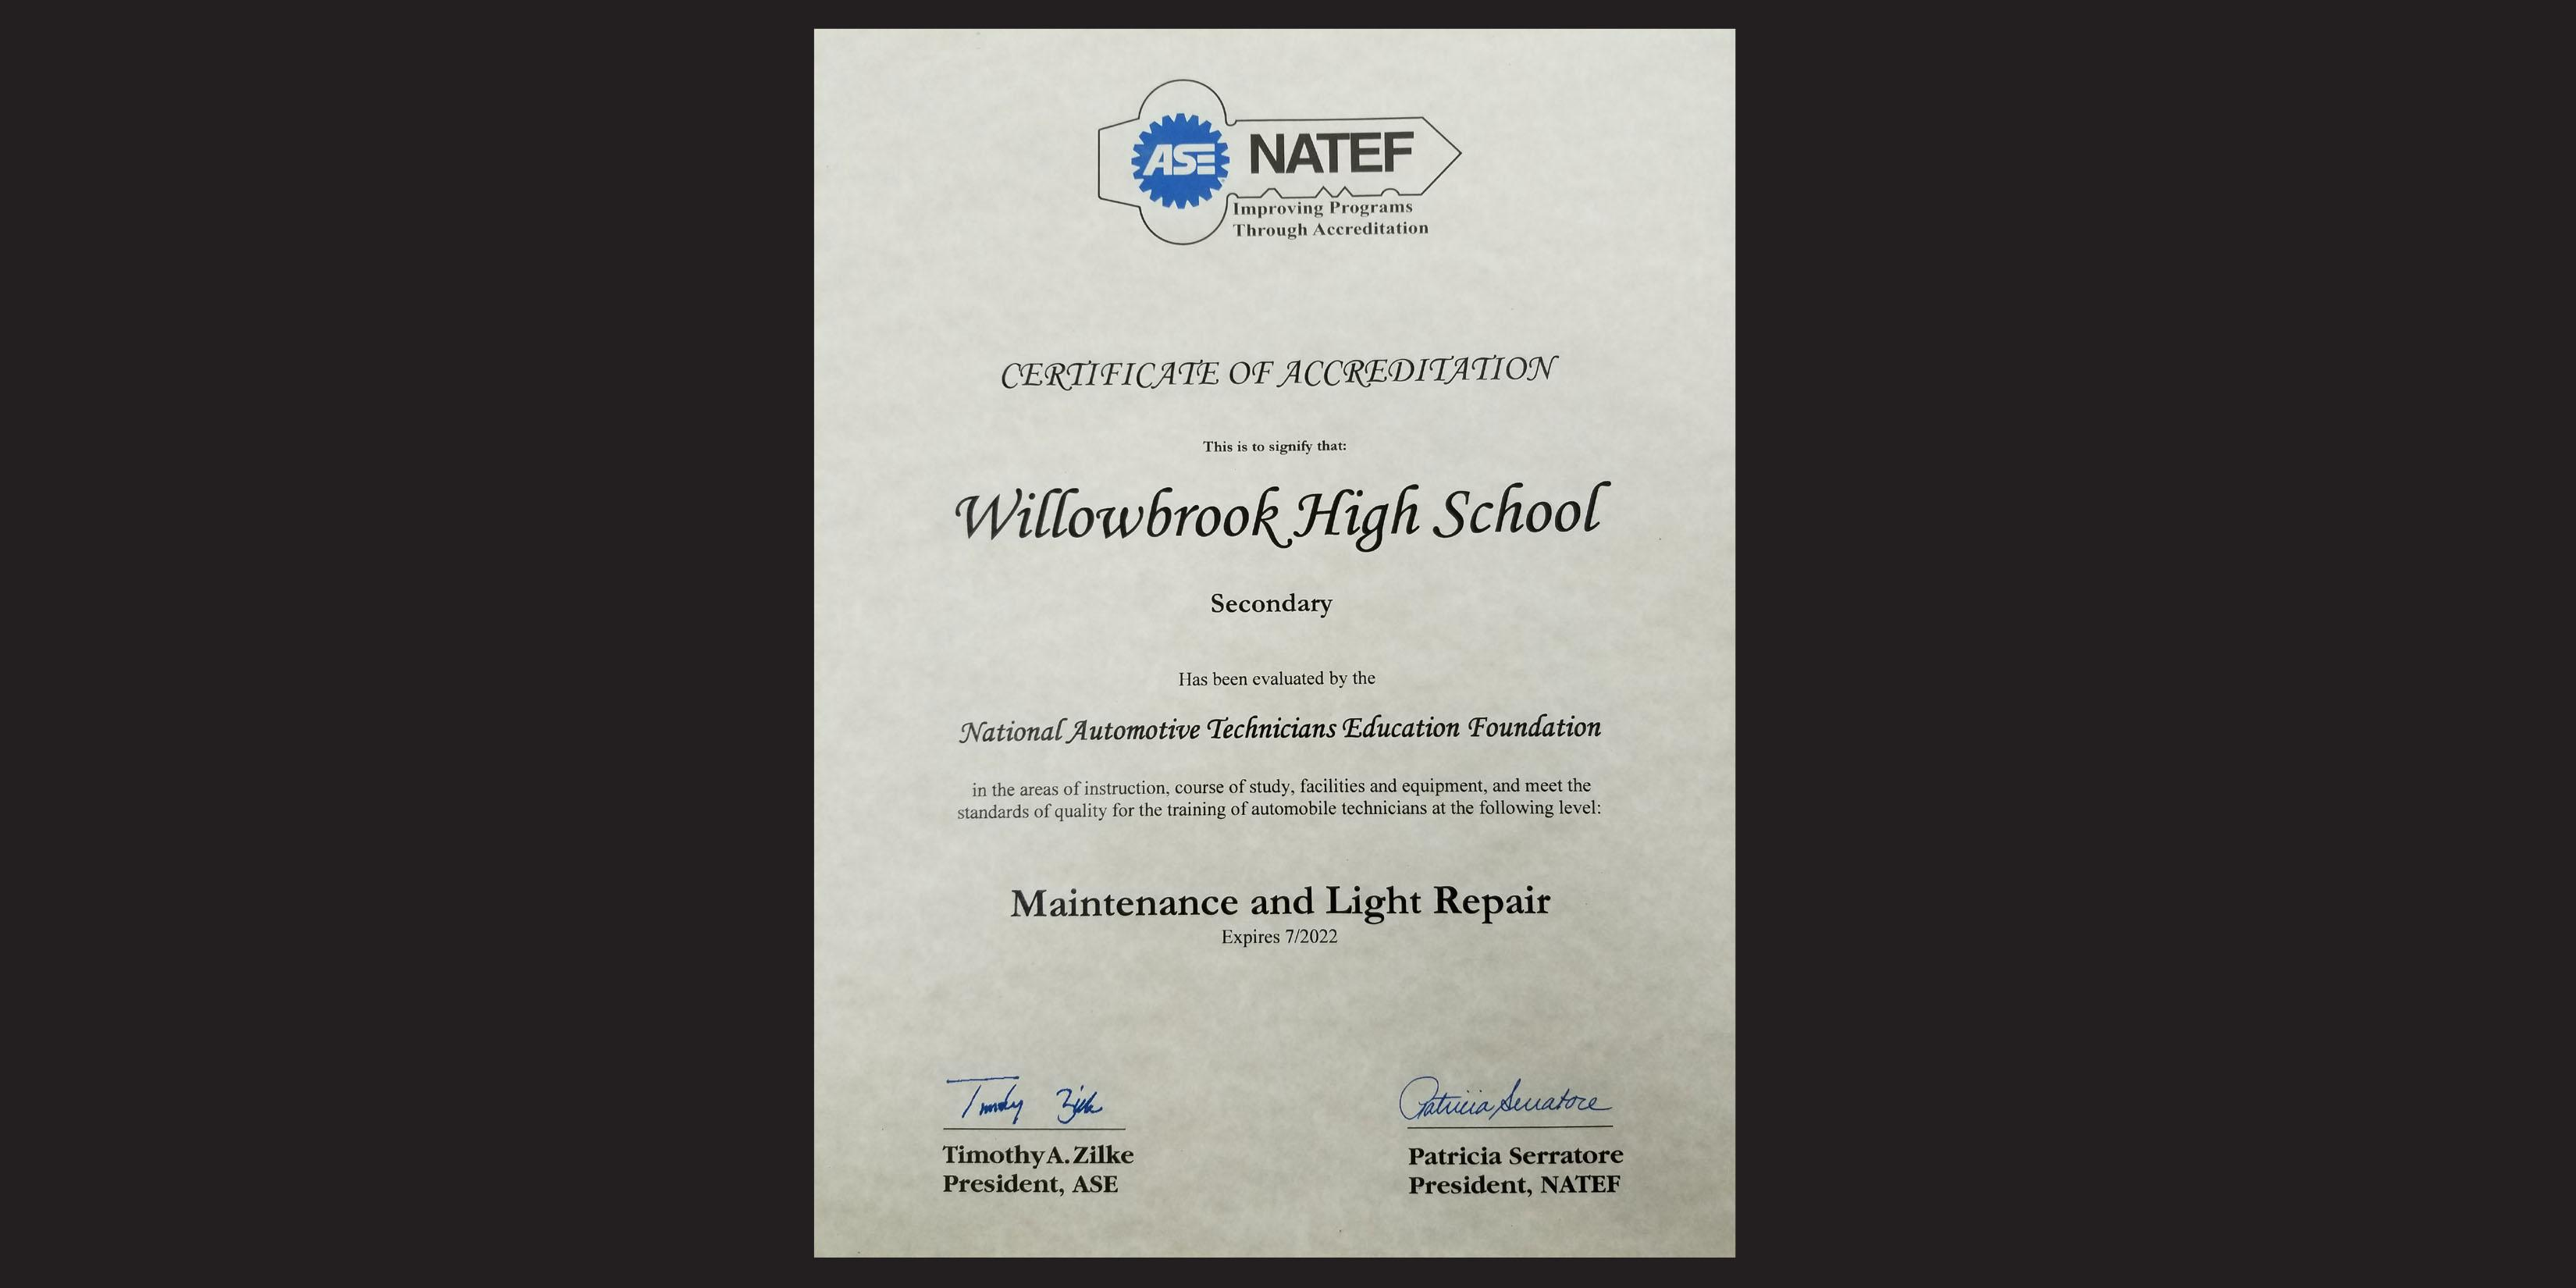 Willowbrook earns accreditation by the National Automotive Technicians Education Foundation